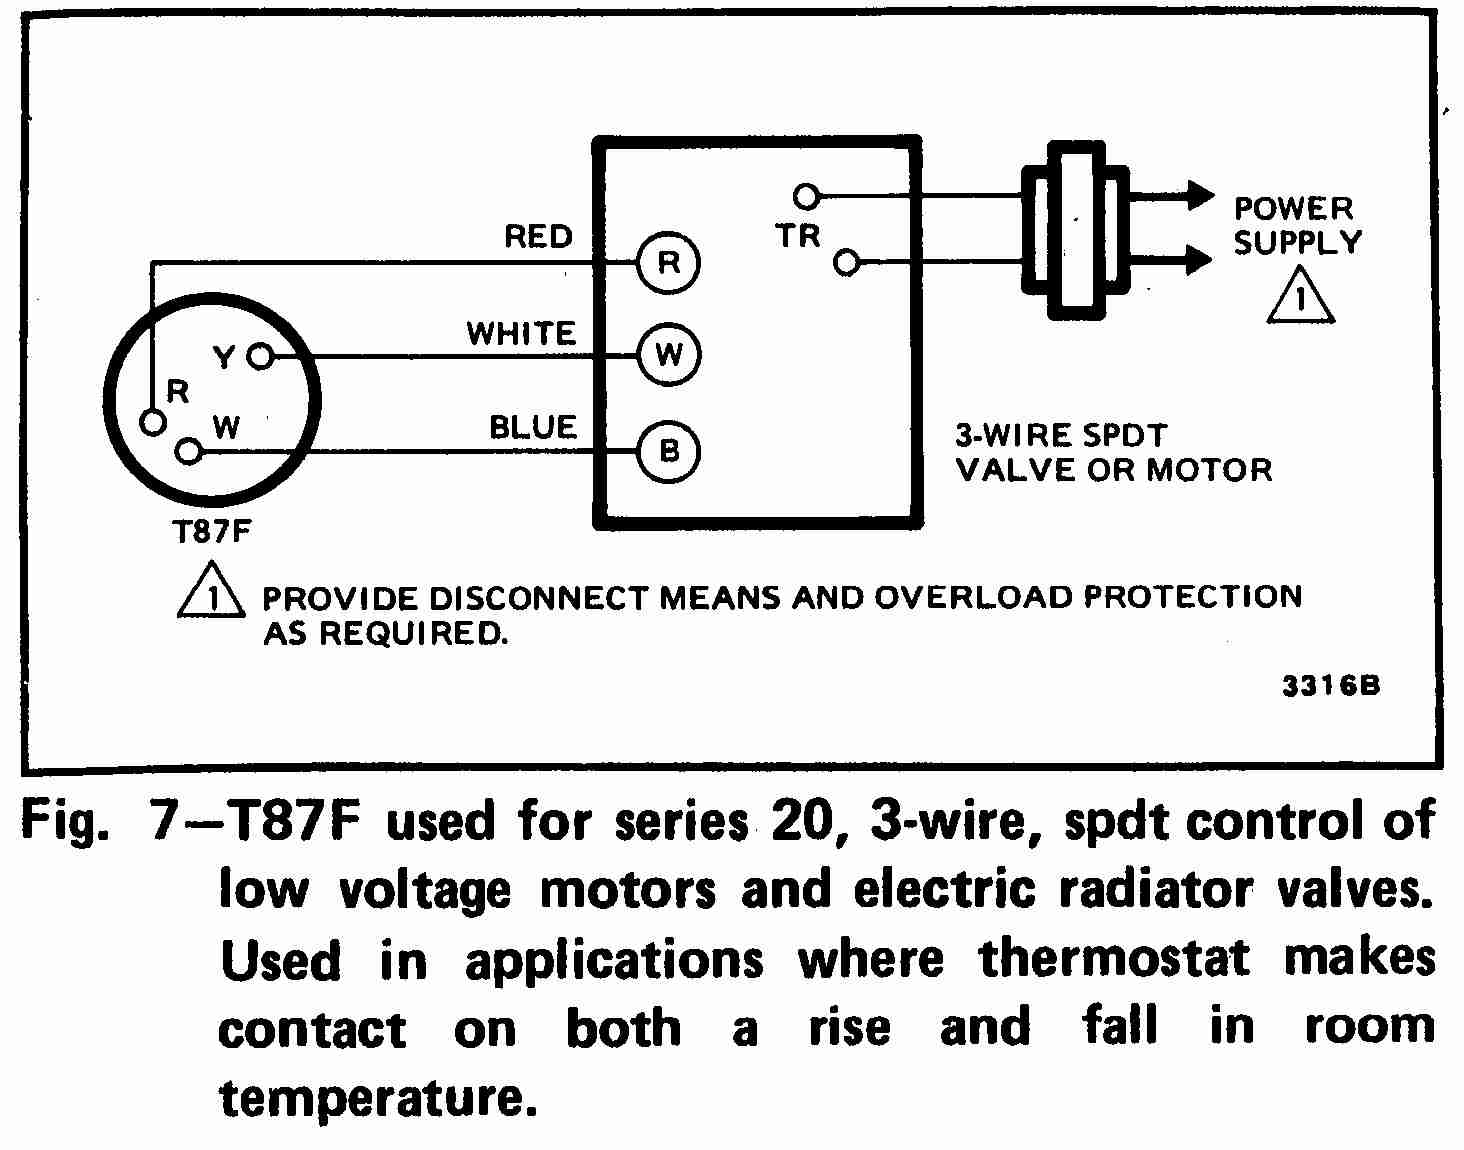 TT_T87F_0002_3W2_DJF room thermostat wiring diagrams for hvac systems heat cool thermostat wiring diagram at readyjetset.co